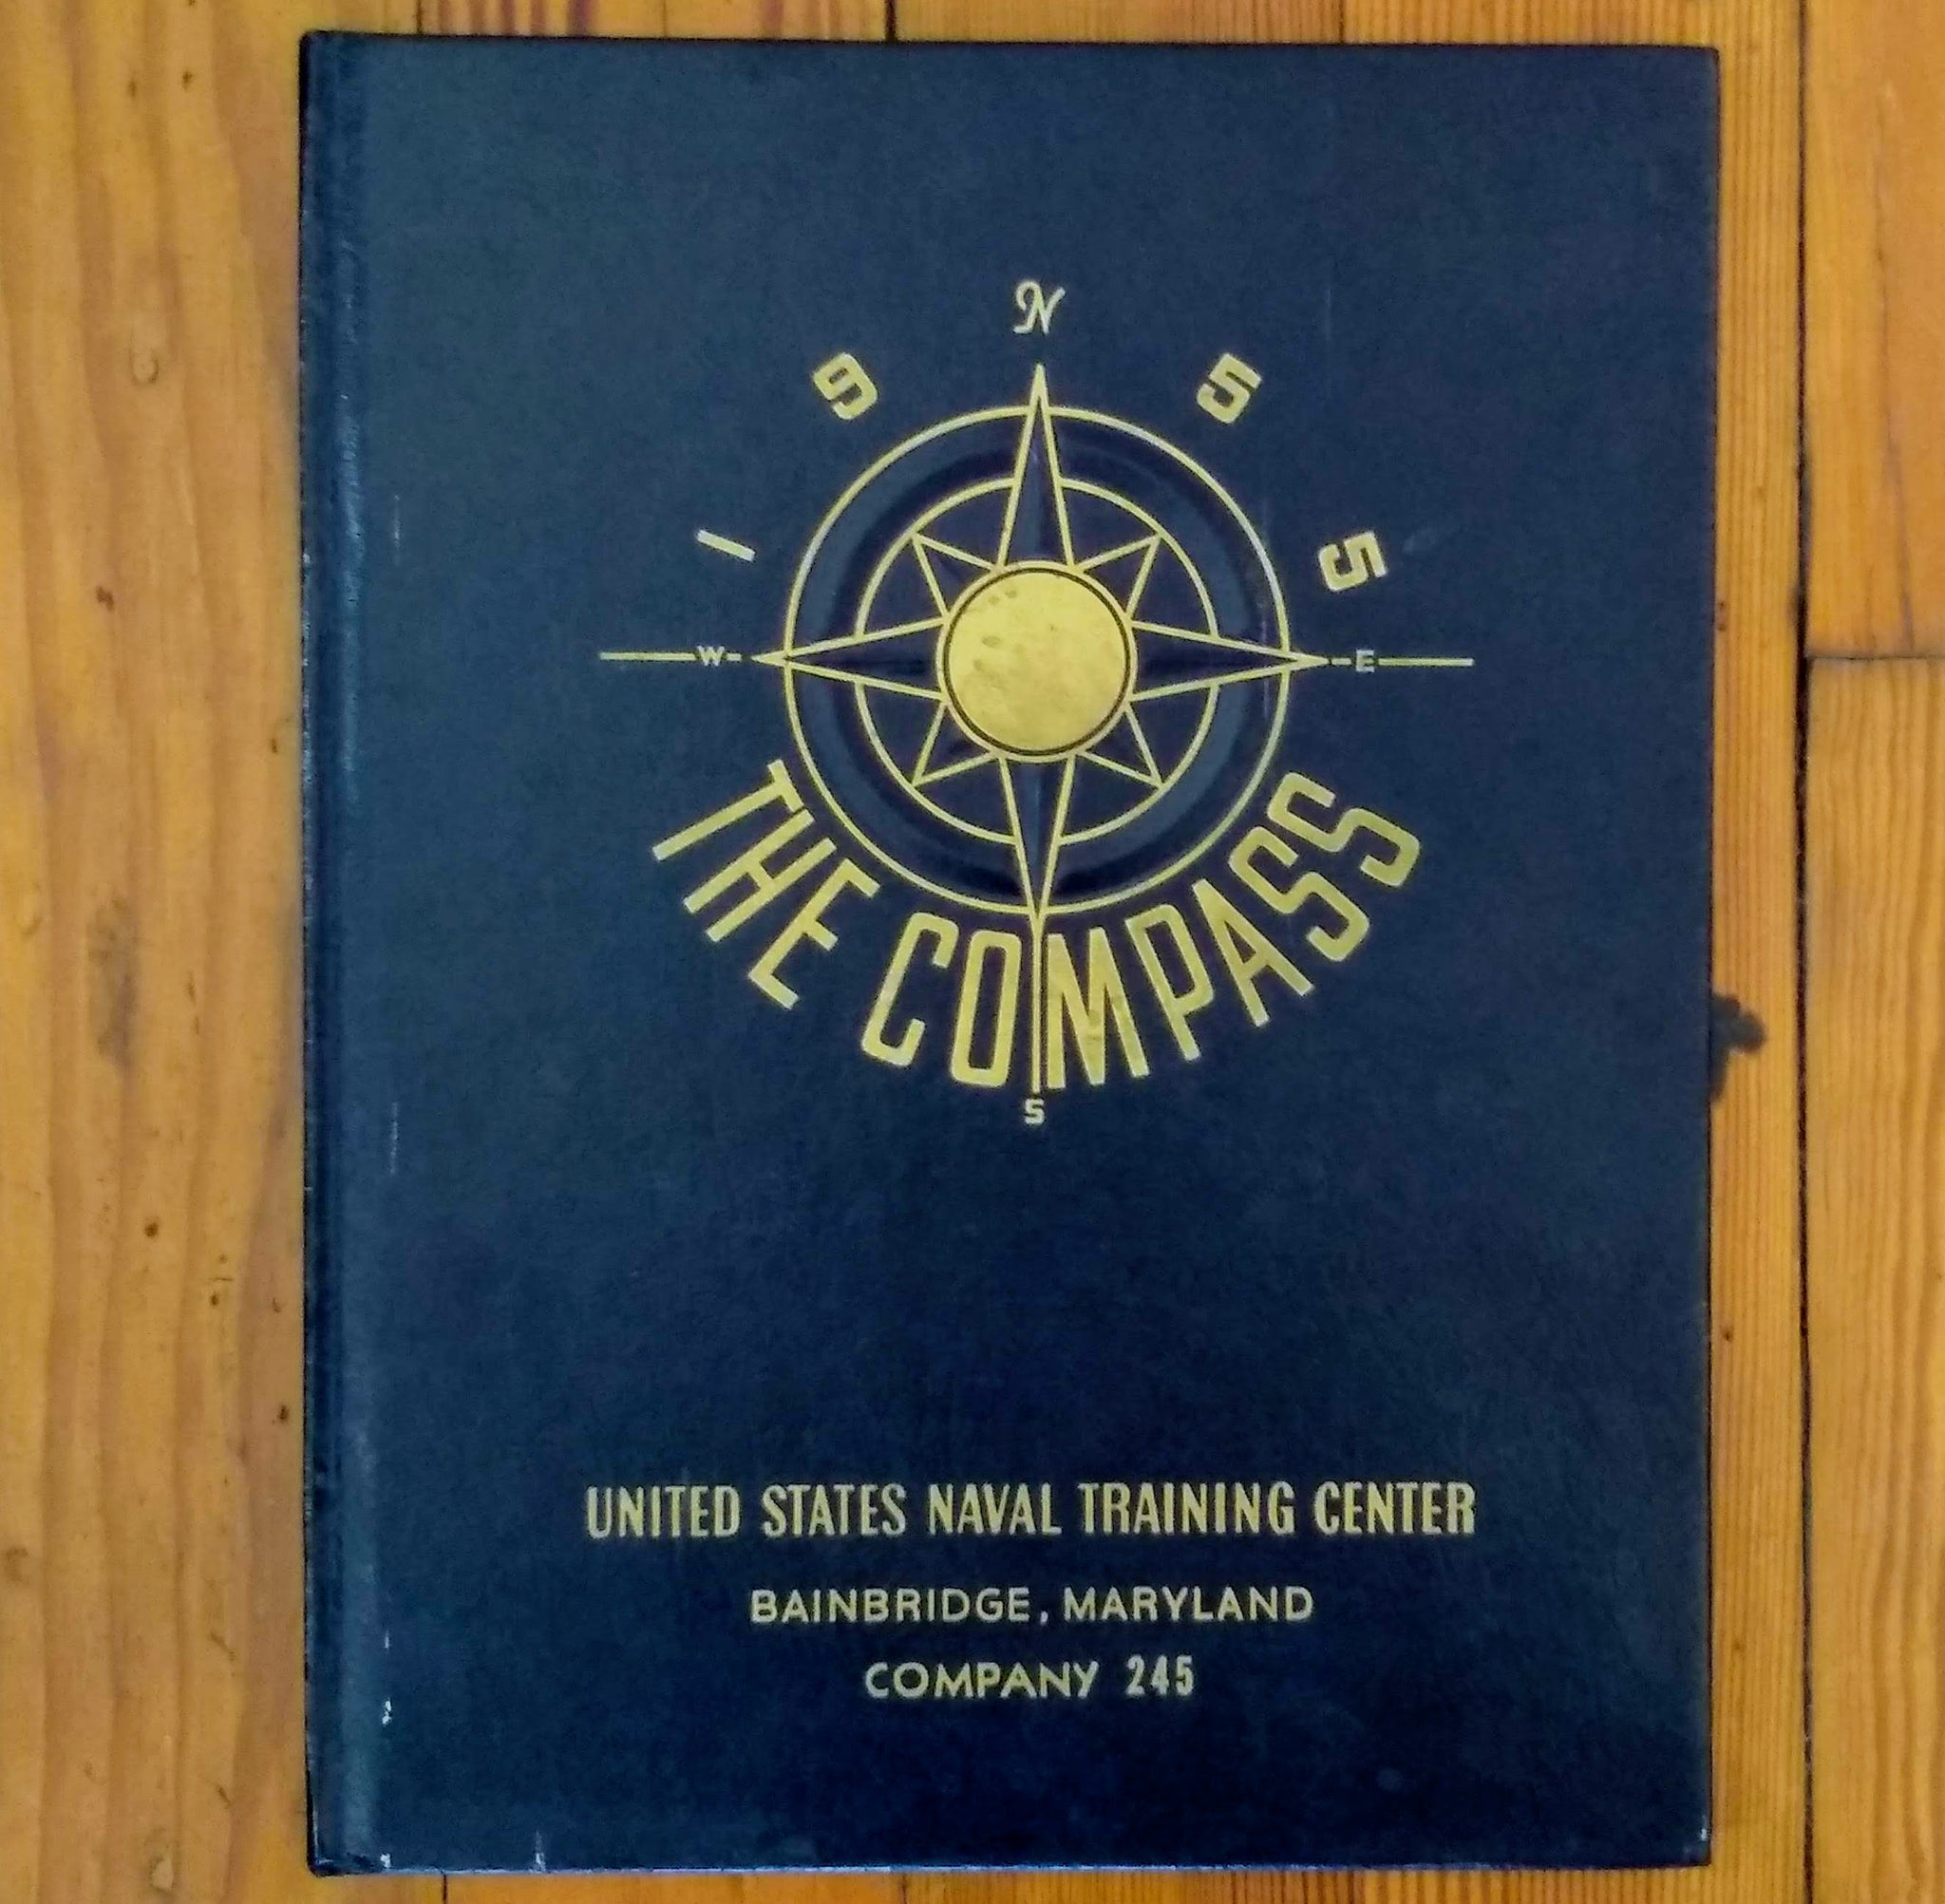 Book; The Compass, United States Naval Training Center, Company 245 - Annapolis Maritime Antiques